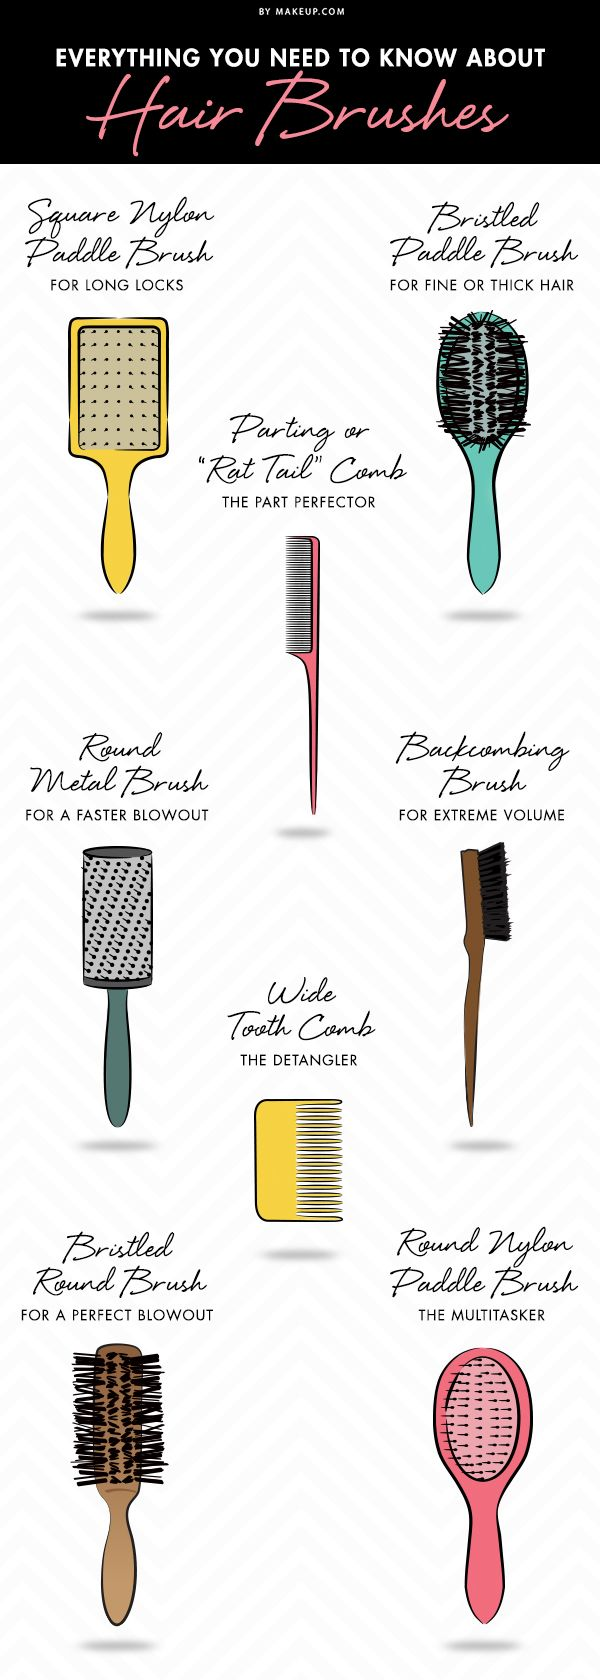 Here's all you need to know to brush up on your hair-brush knowledge!